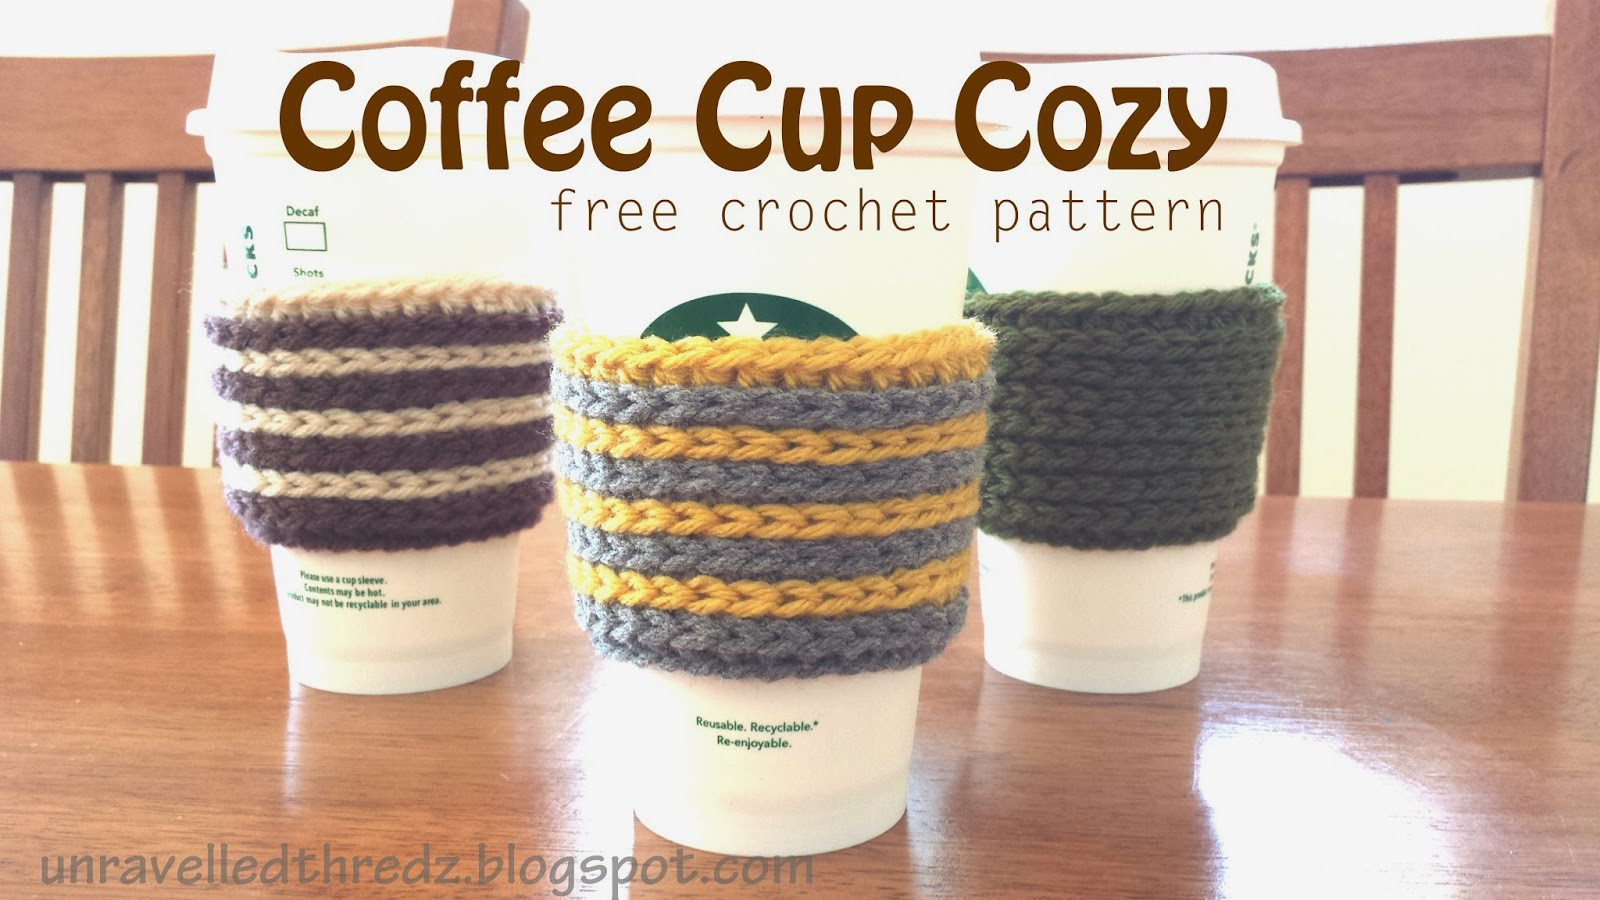 Crochet Coffee Cup Cozy Inspirational Crochet Class Beginning Crochet Sparkleez Crystles Of Crochet Coffee Cup Cozy Inspirational Crochet Class Beginning Crochet Sparkleez Crystles